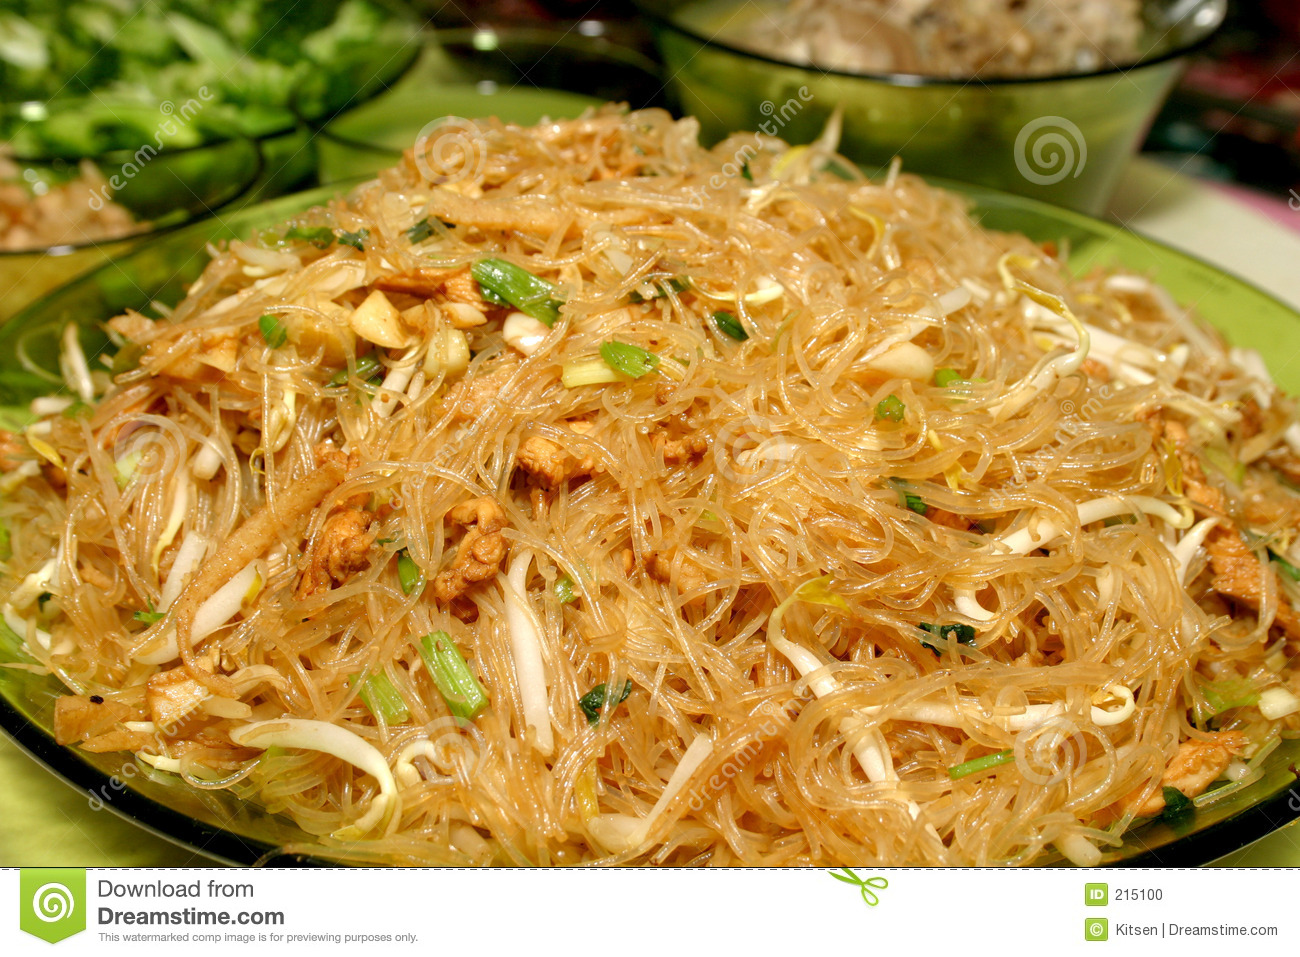 Chinese glass noodles